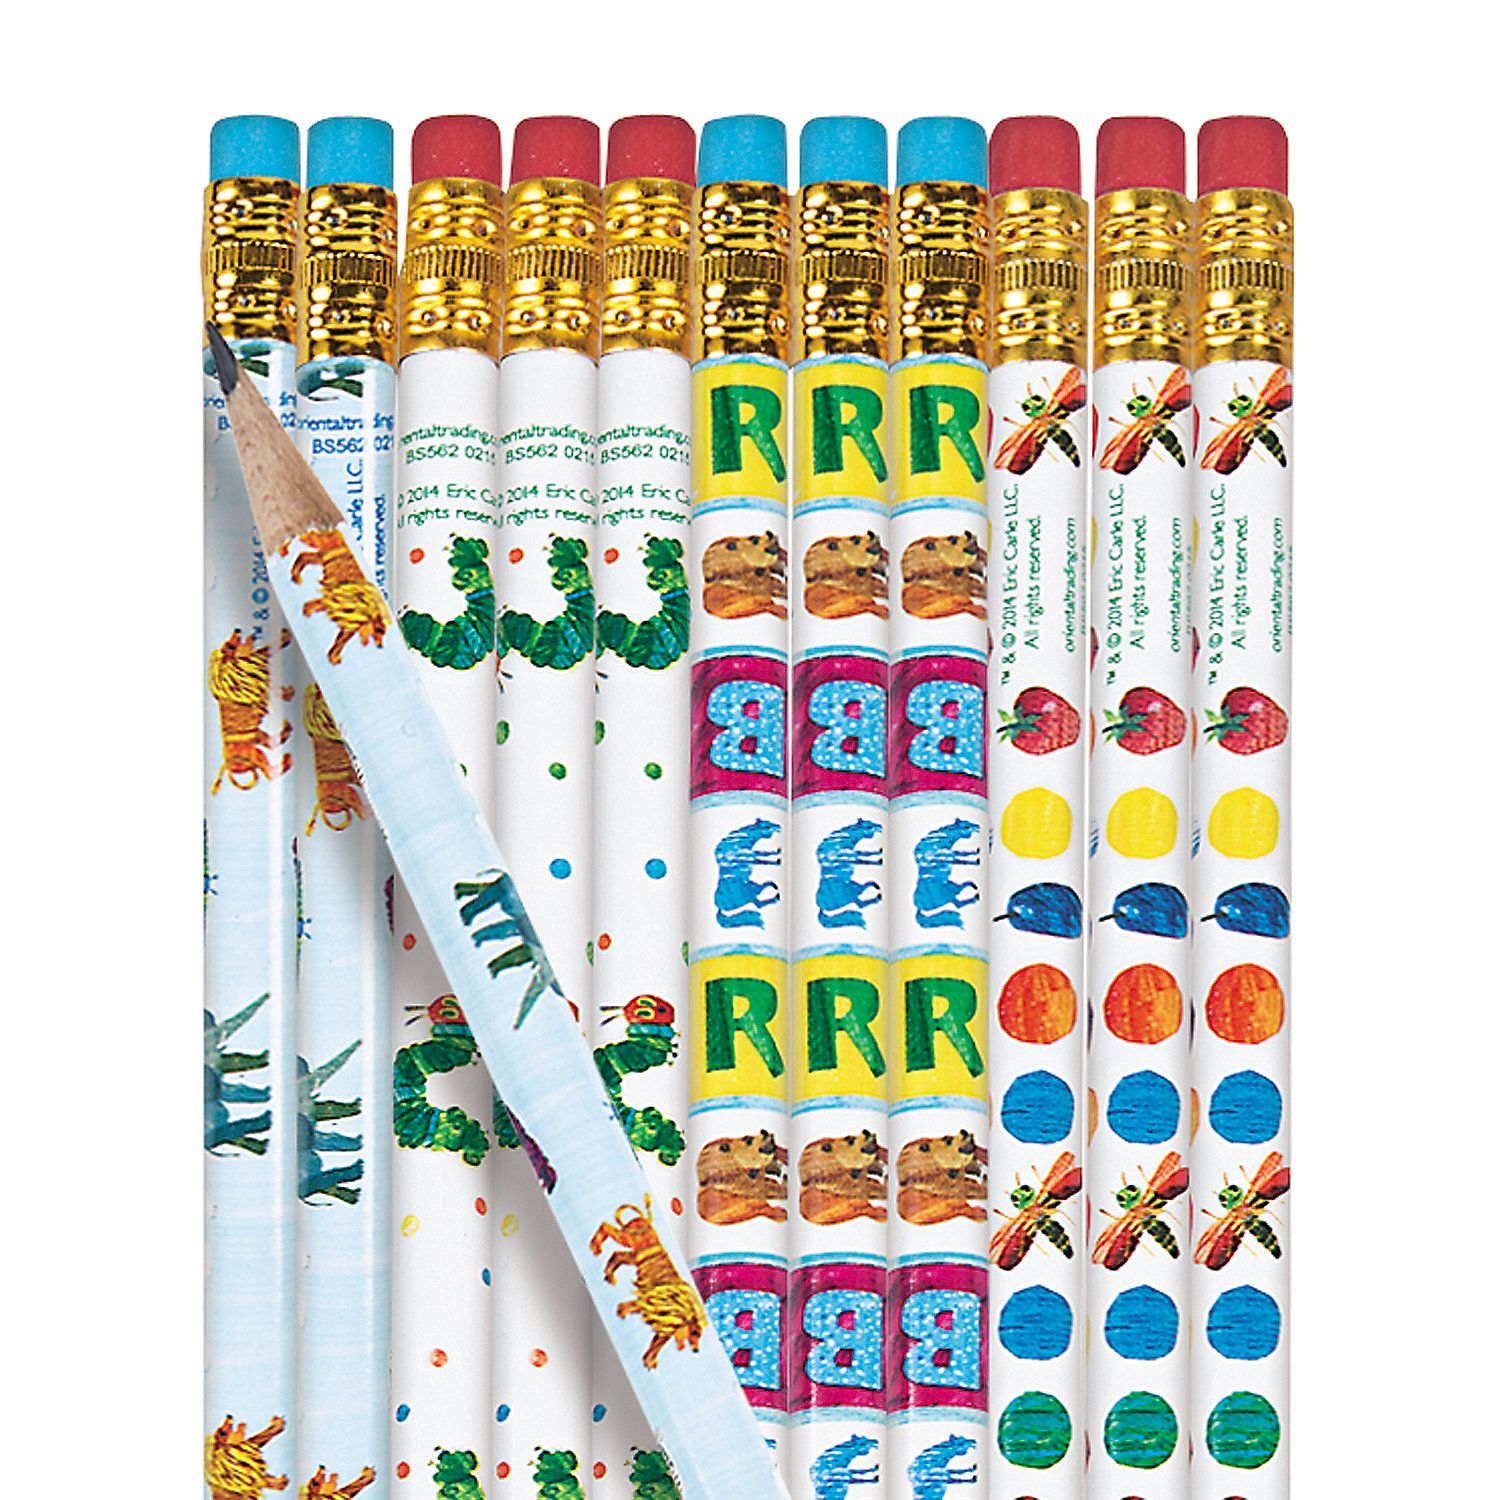 The World Of Eric Carle Pencil Assortment